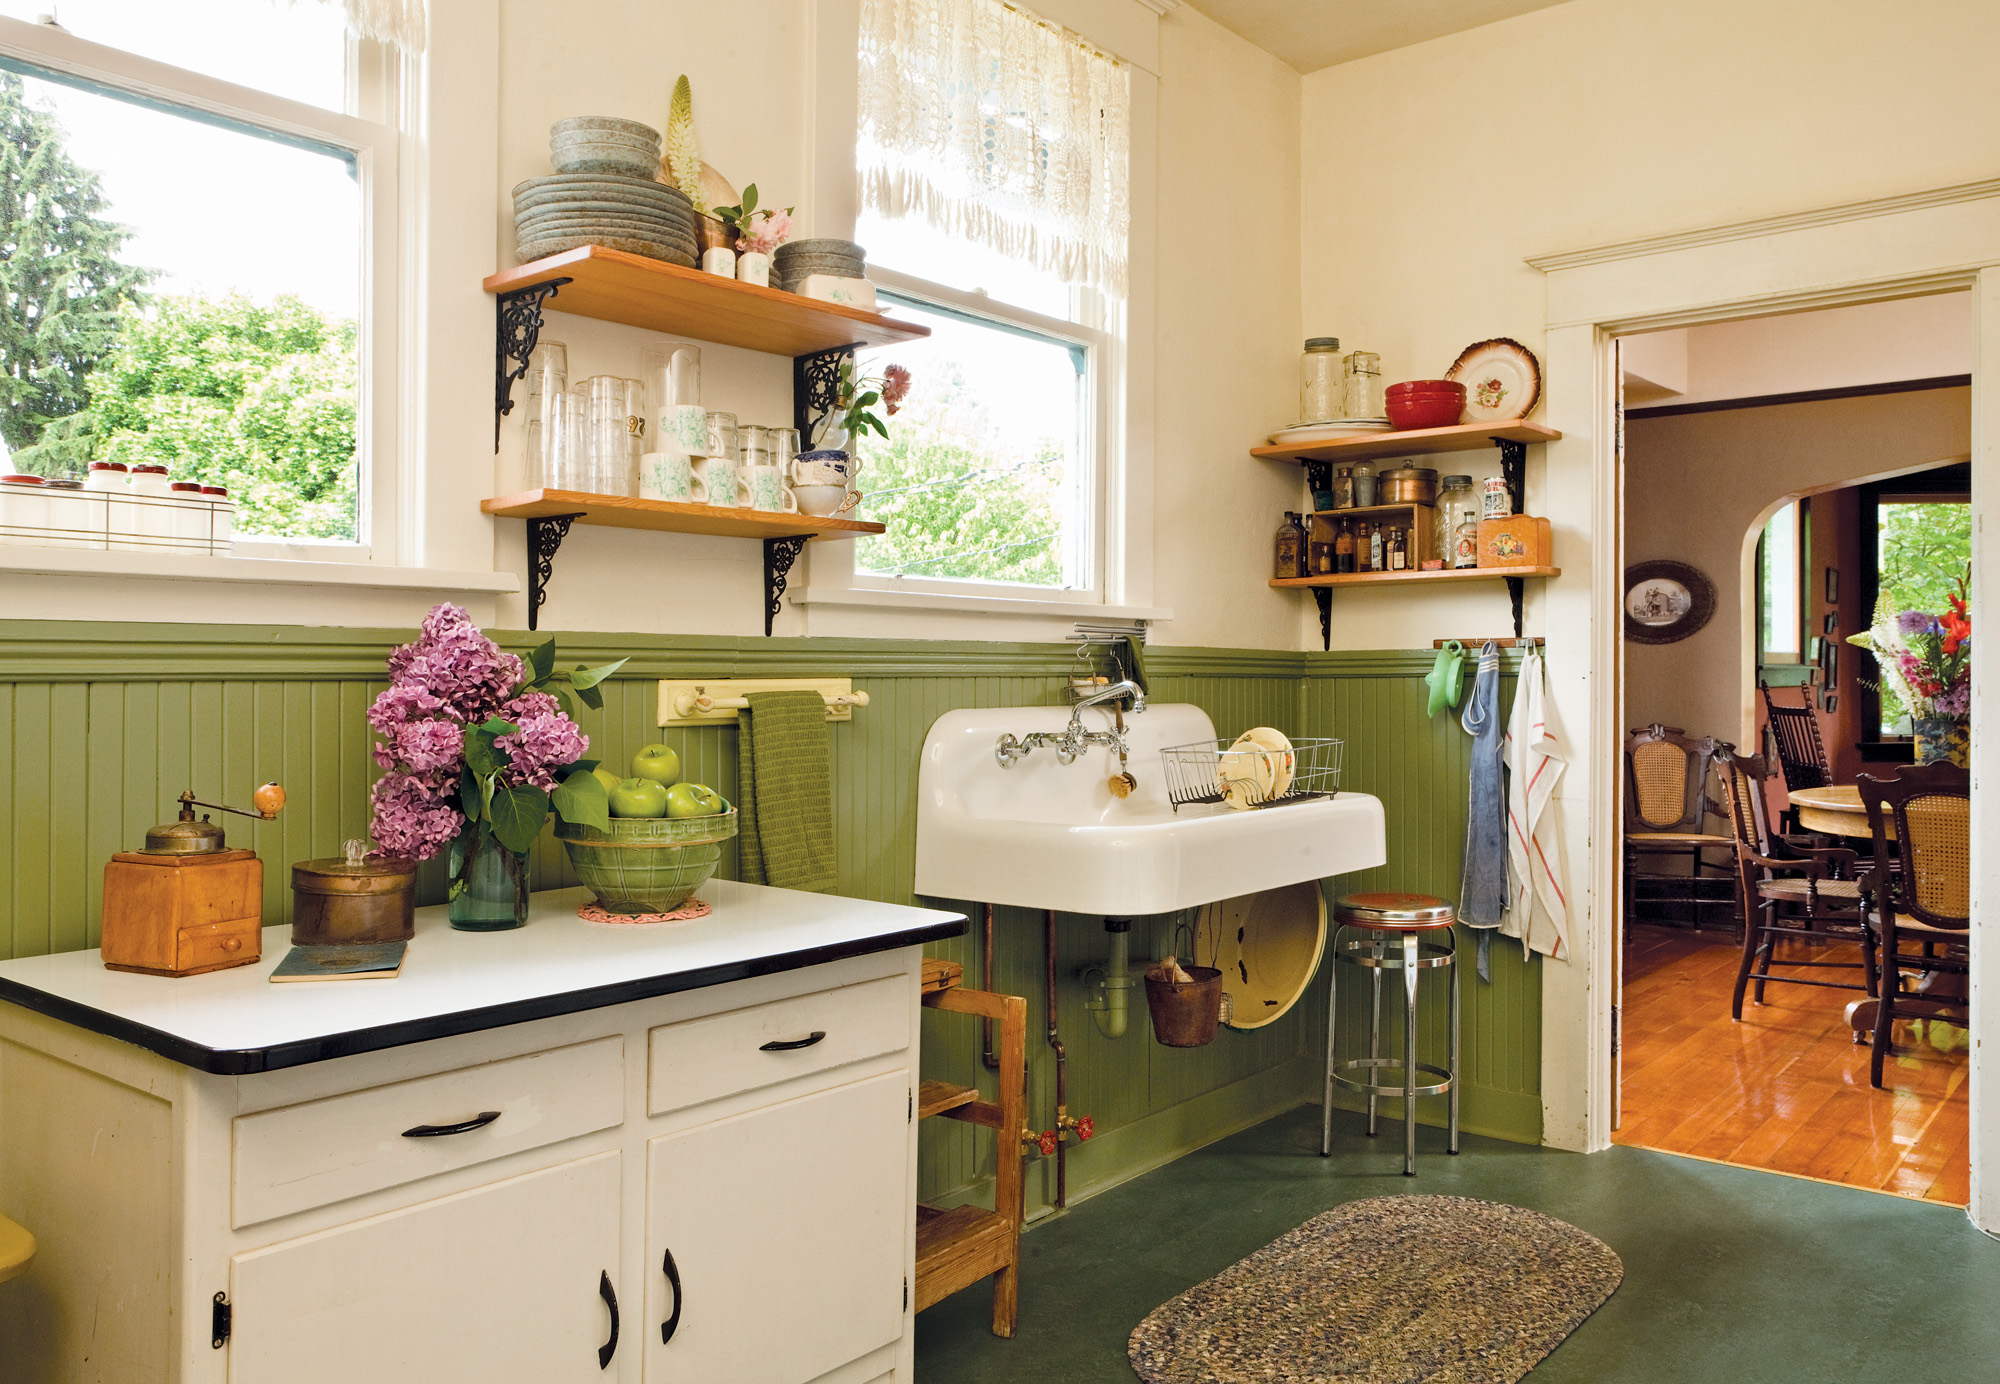 vintage wall-mounted sink